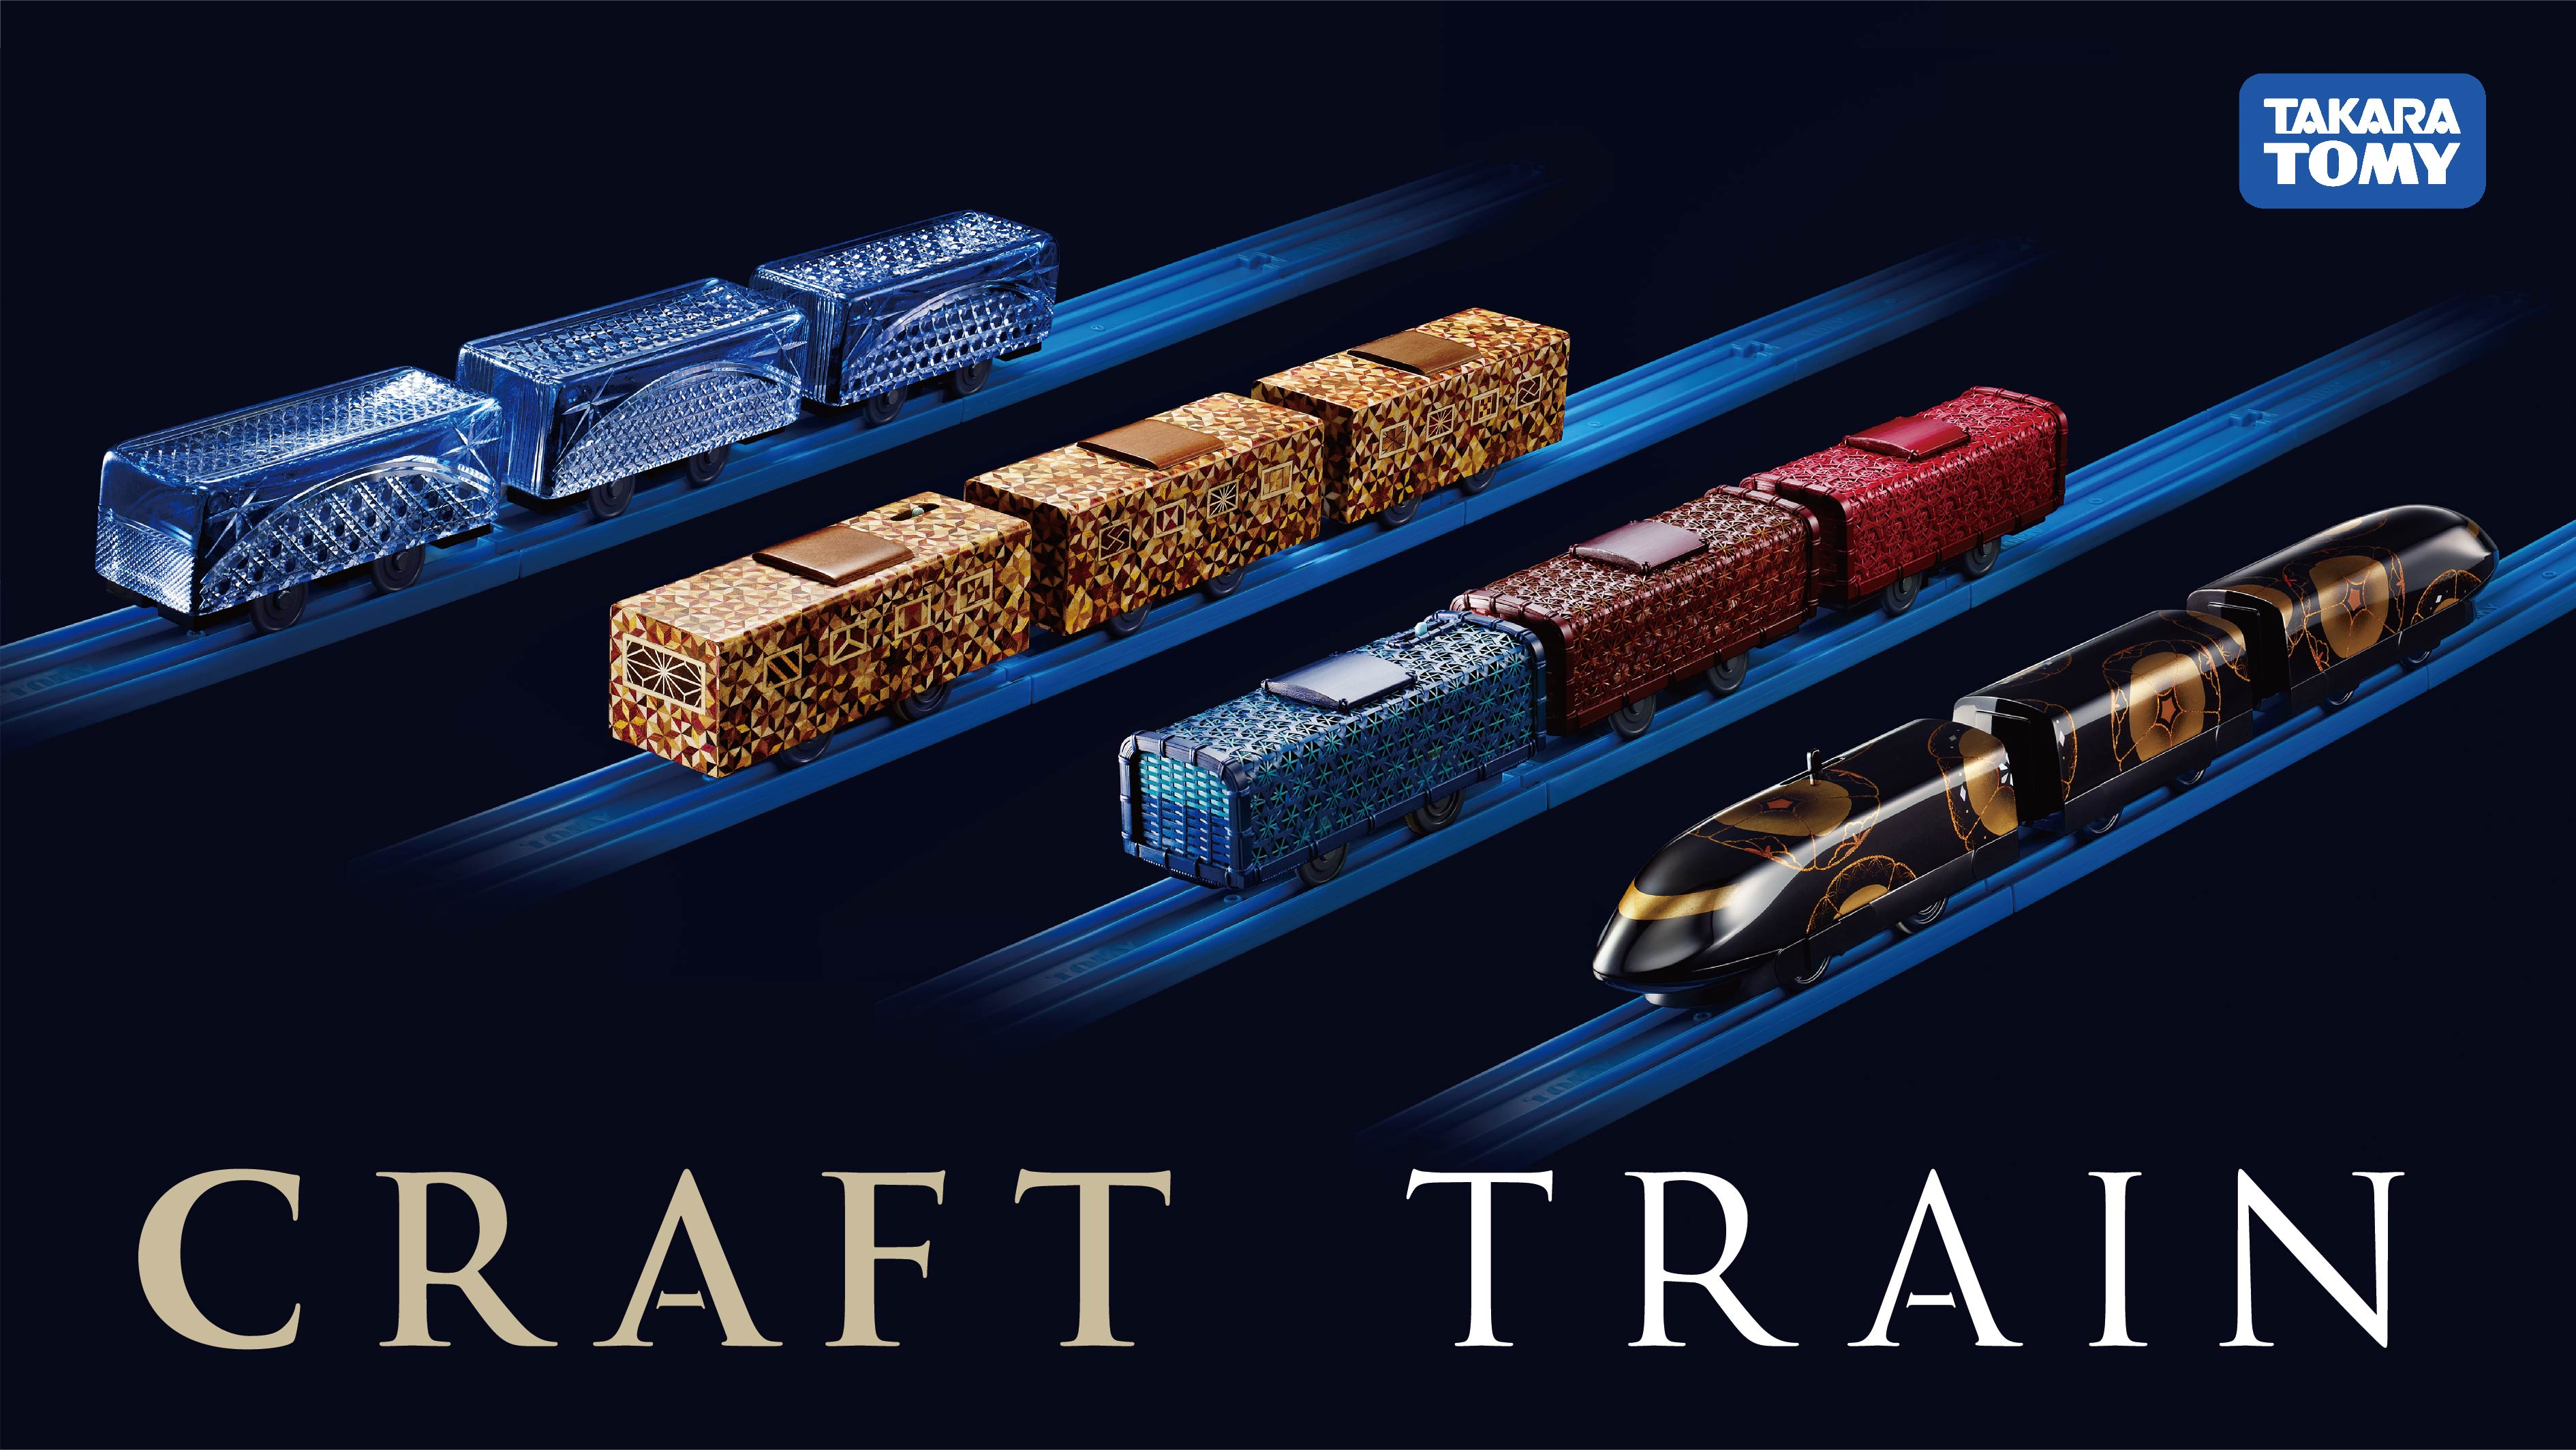 CRAFT TRAIN